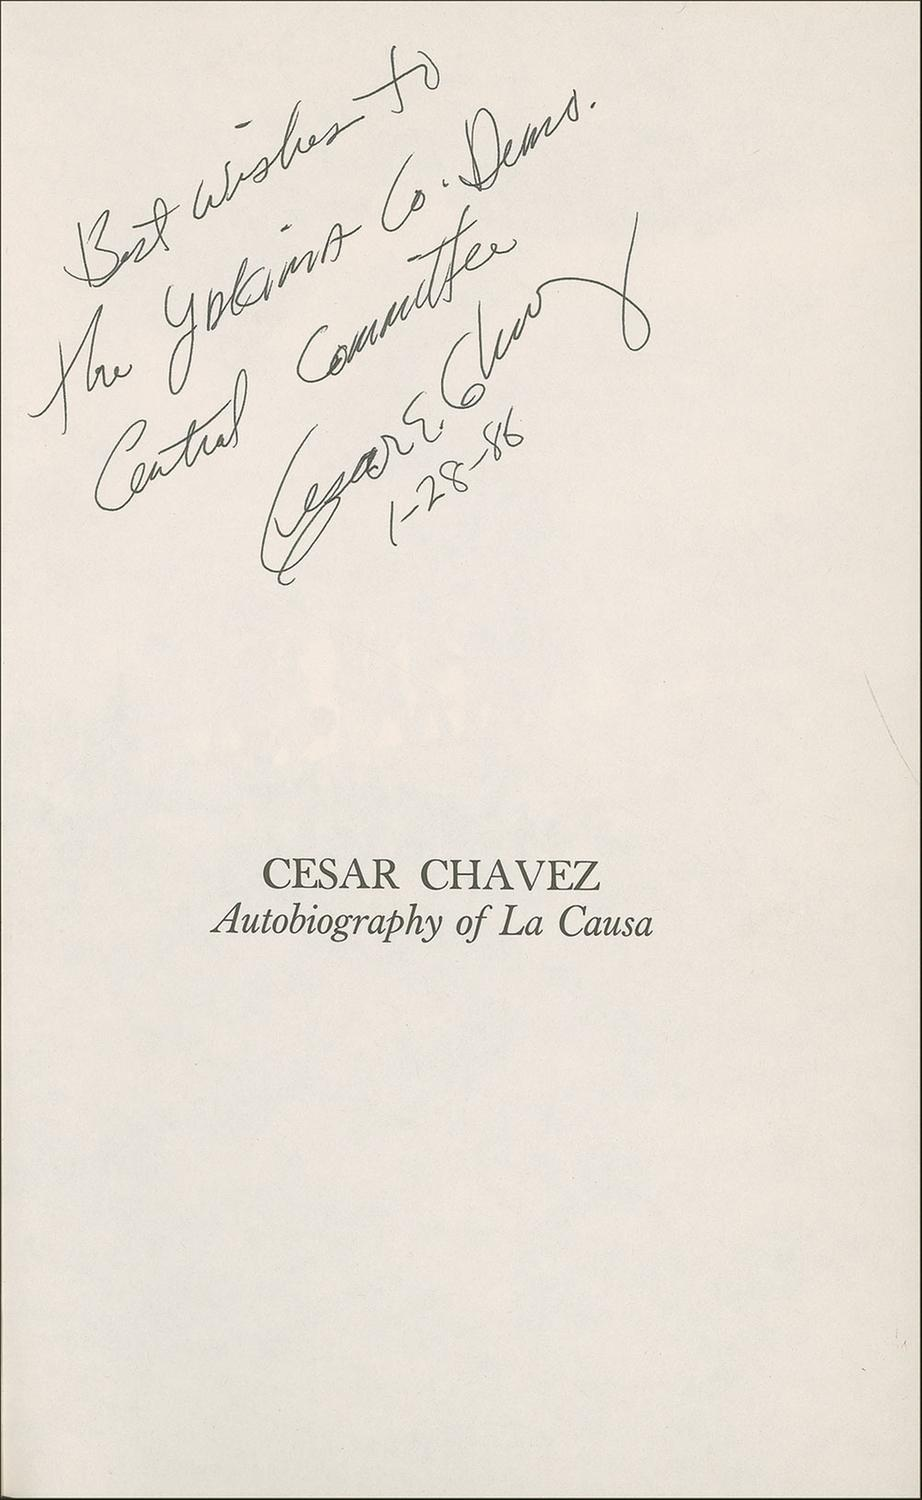 cesar chavez notes The crusades of cesar chavez has 164 ratings and 24 reviews hakan said: i didn't know much about cesar chavez before getting this book  notes and more pawel, in the first critical biography of chavez, gives us the good, the bad, and the ugly in the life of the man who gave california's farmworkers their first union, then, due to stubbornness, wrongly-directed singlemindedness and authoritarian leadership, wrecked it pawel quotes chavez talking about that singlemindedness.